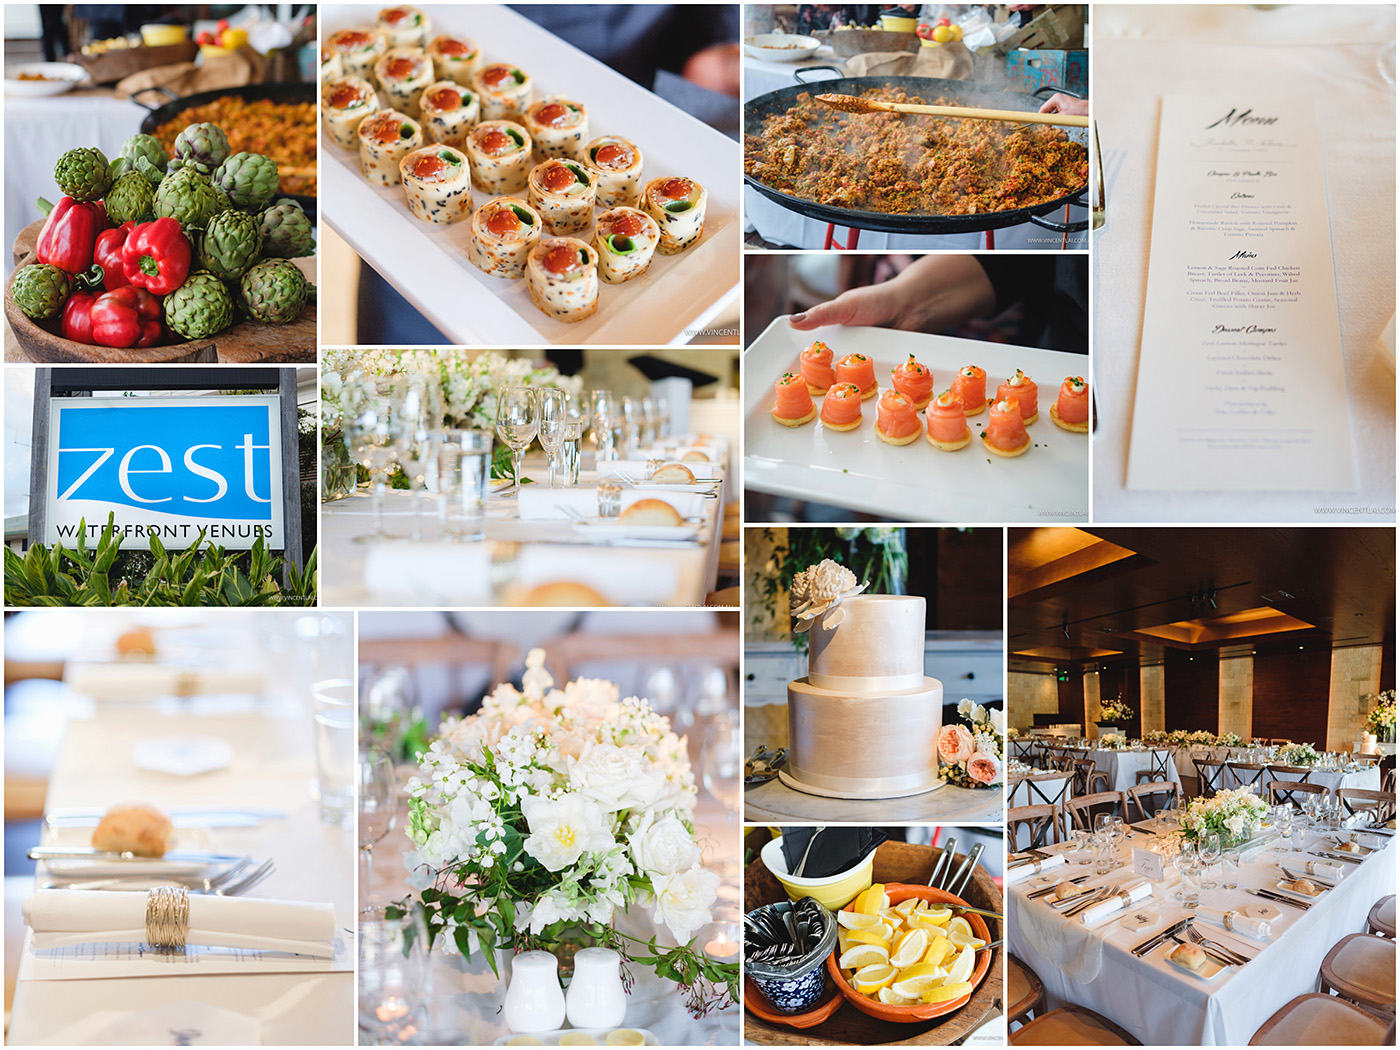 Weddings at The Spit Zest Watefront